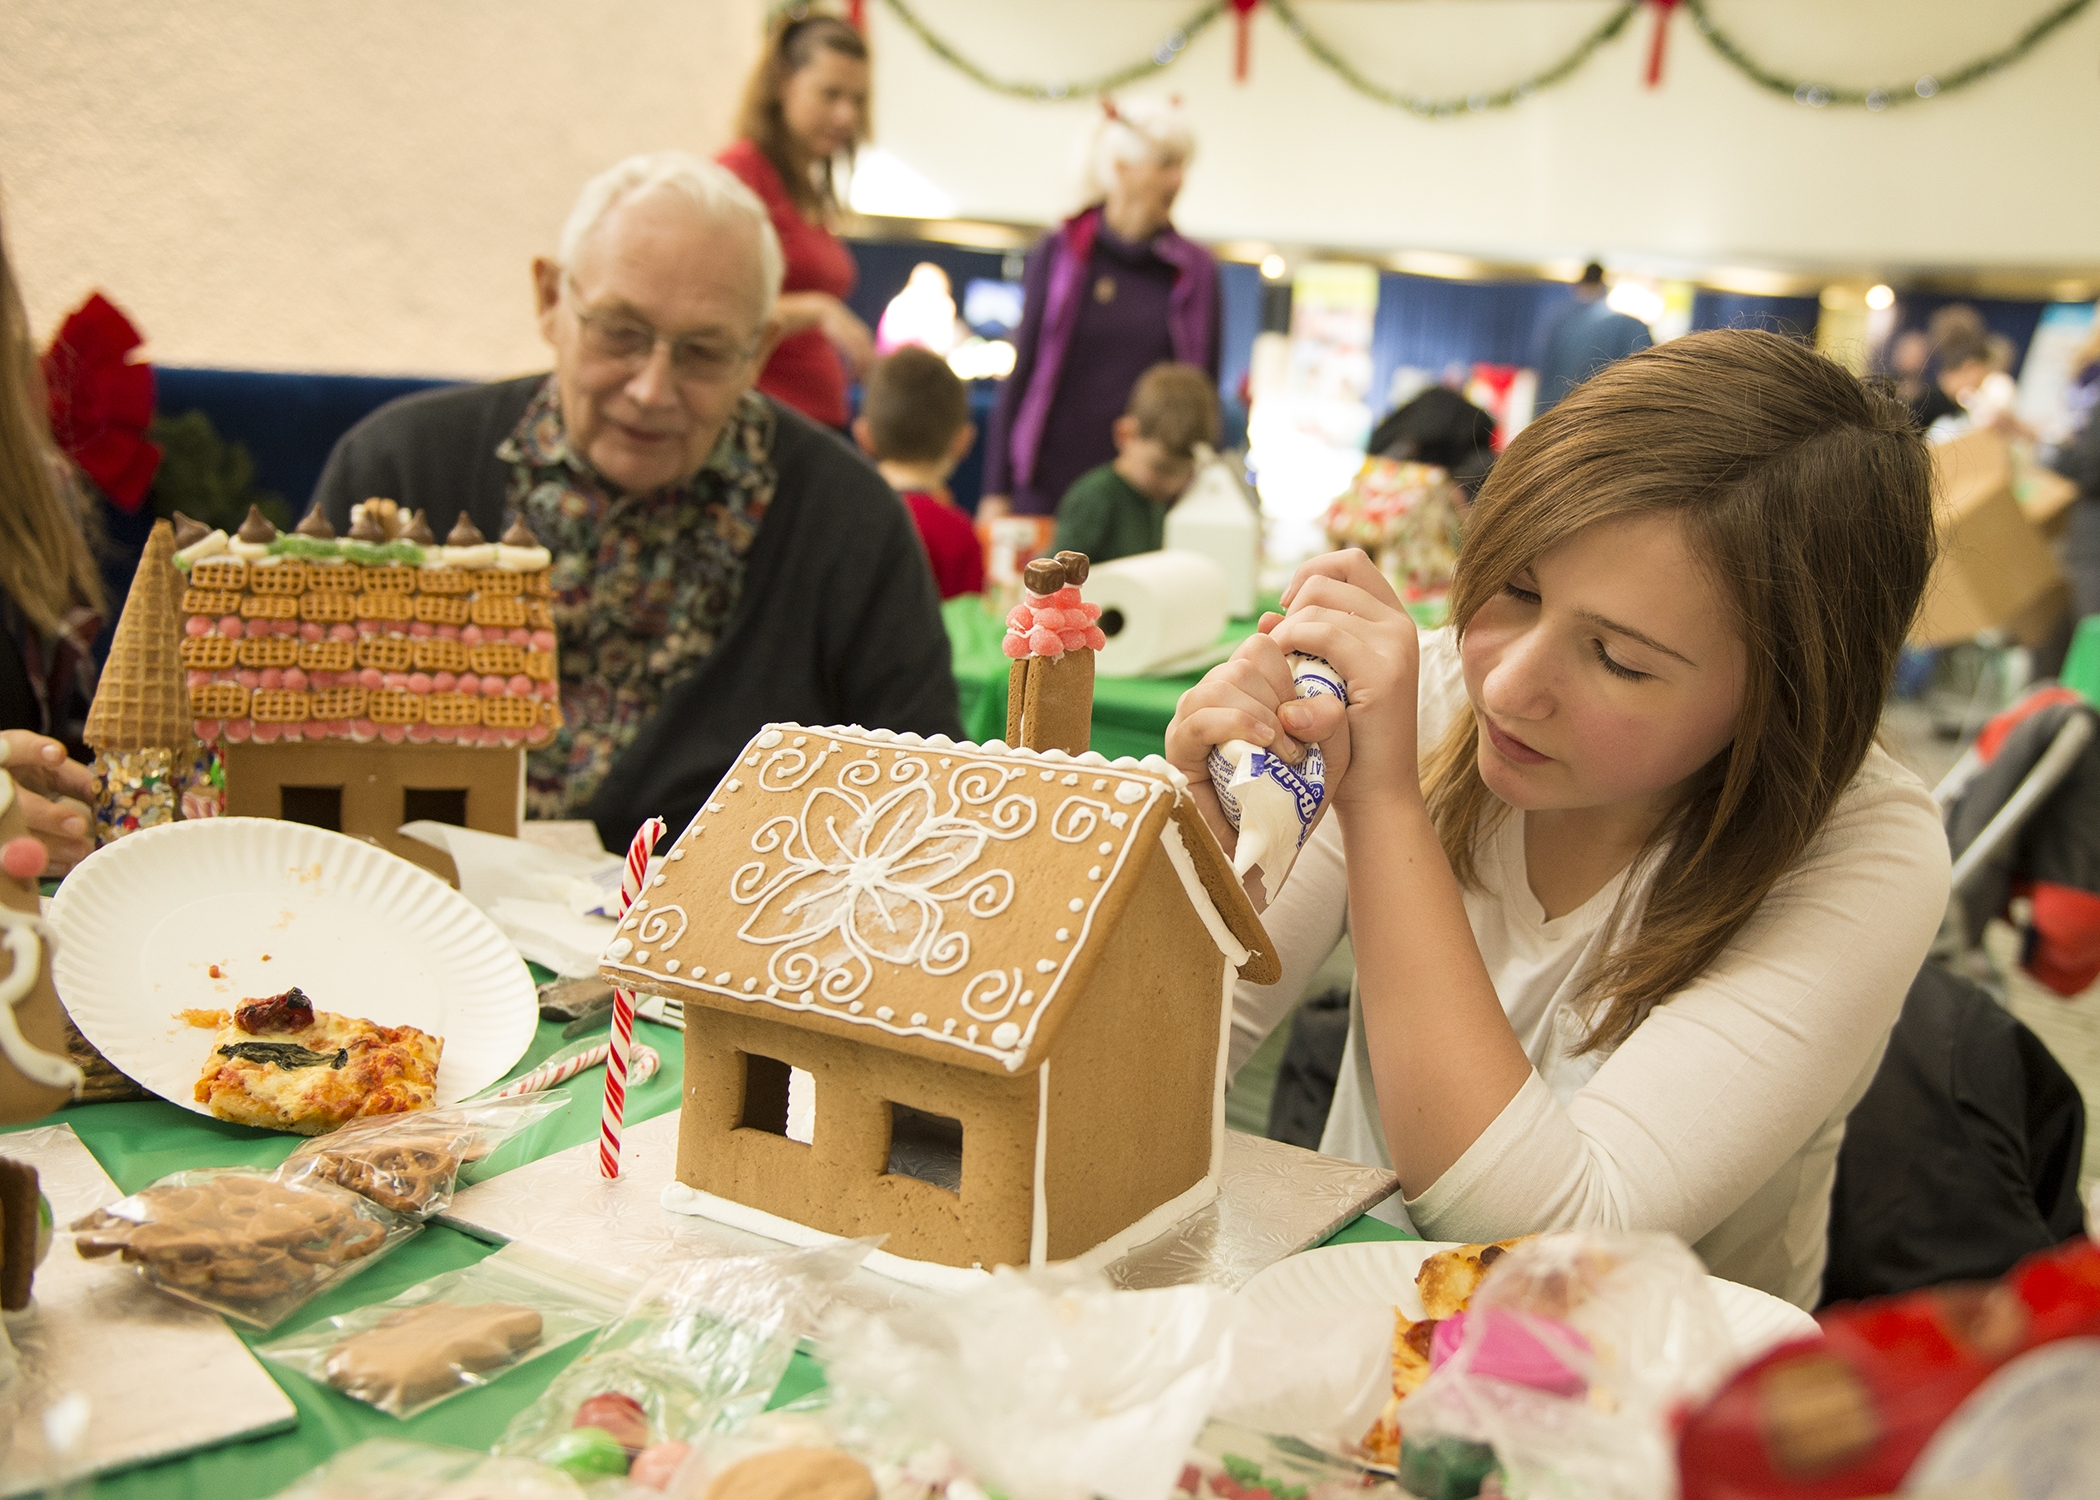 Gingerbread House for Habitat for Humanity